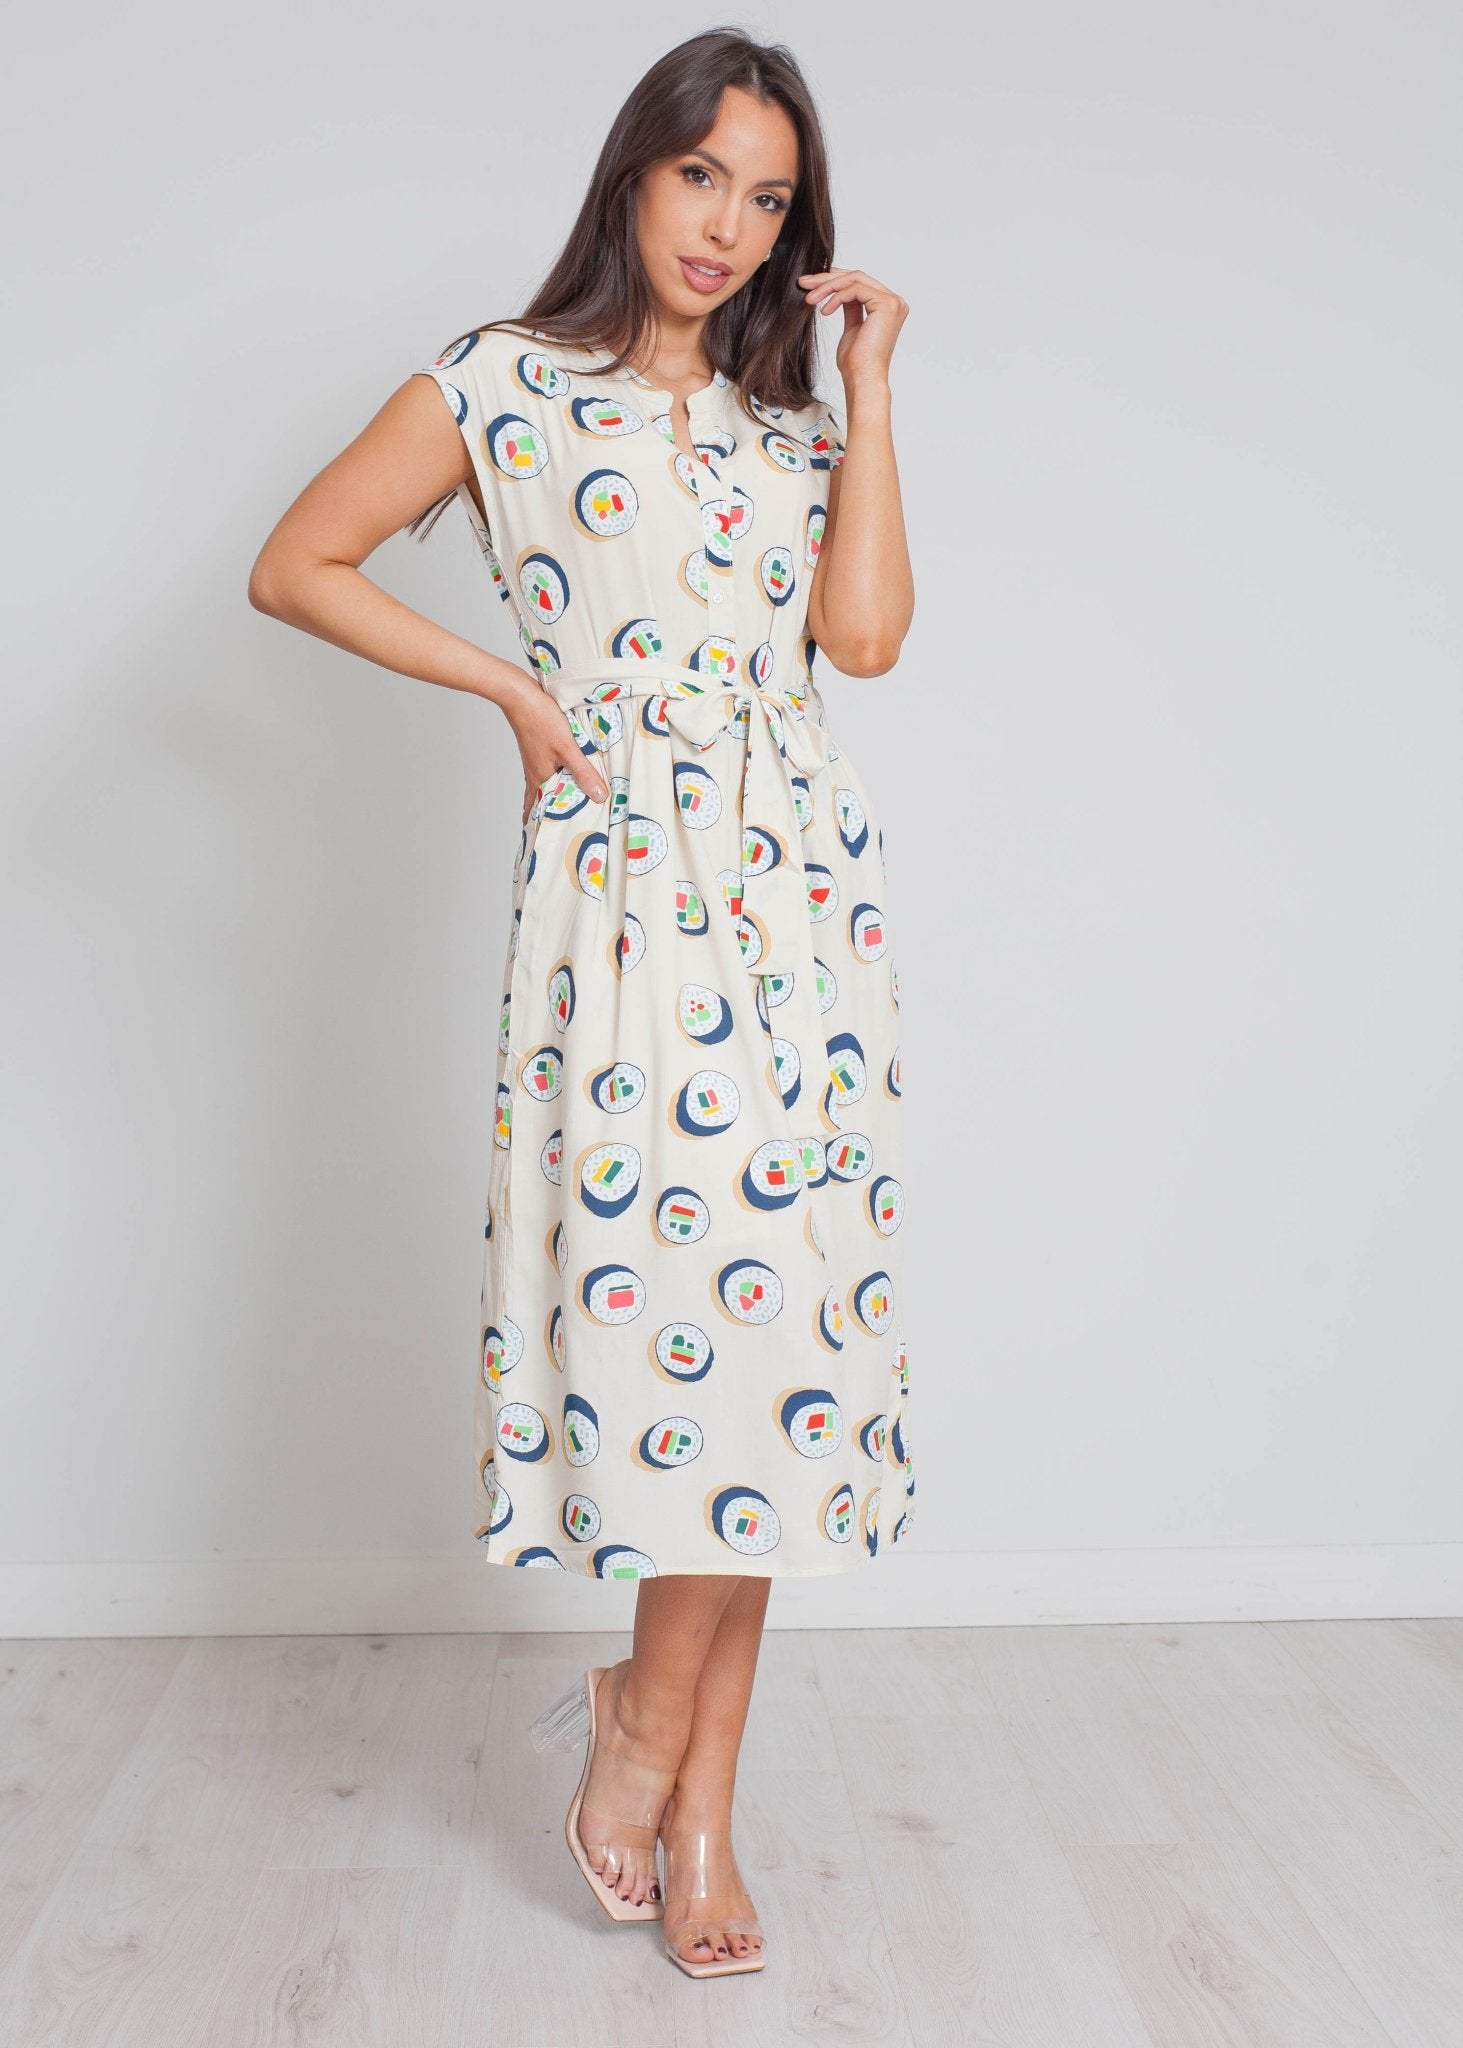 Frankie Sleeveless Sushi Print Dress In Neutral - The Walk in Wardrobe